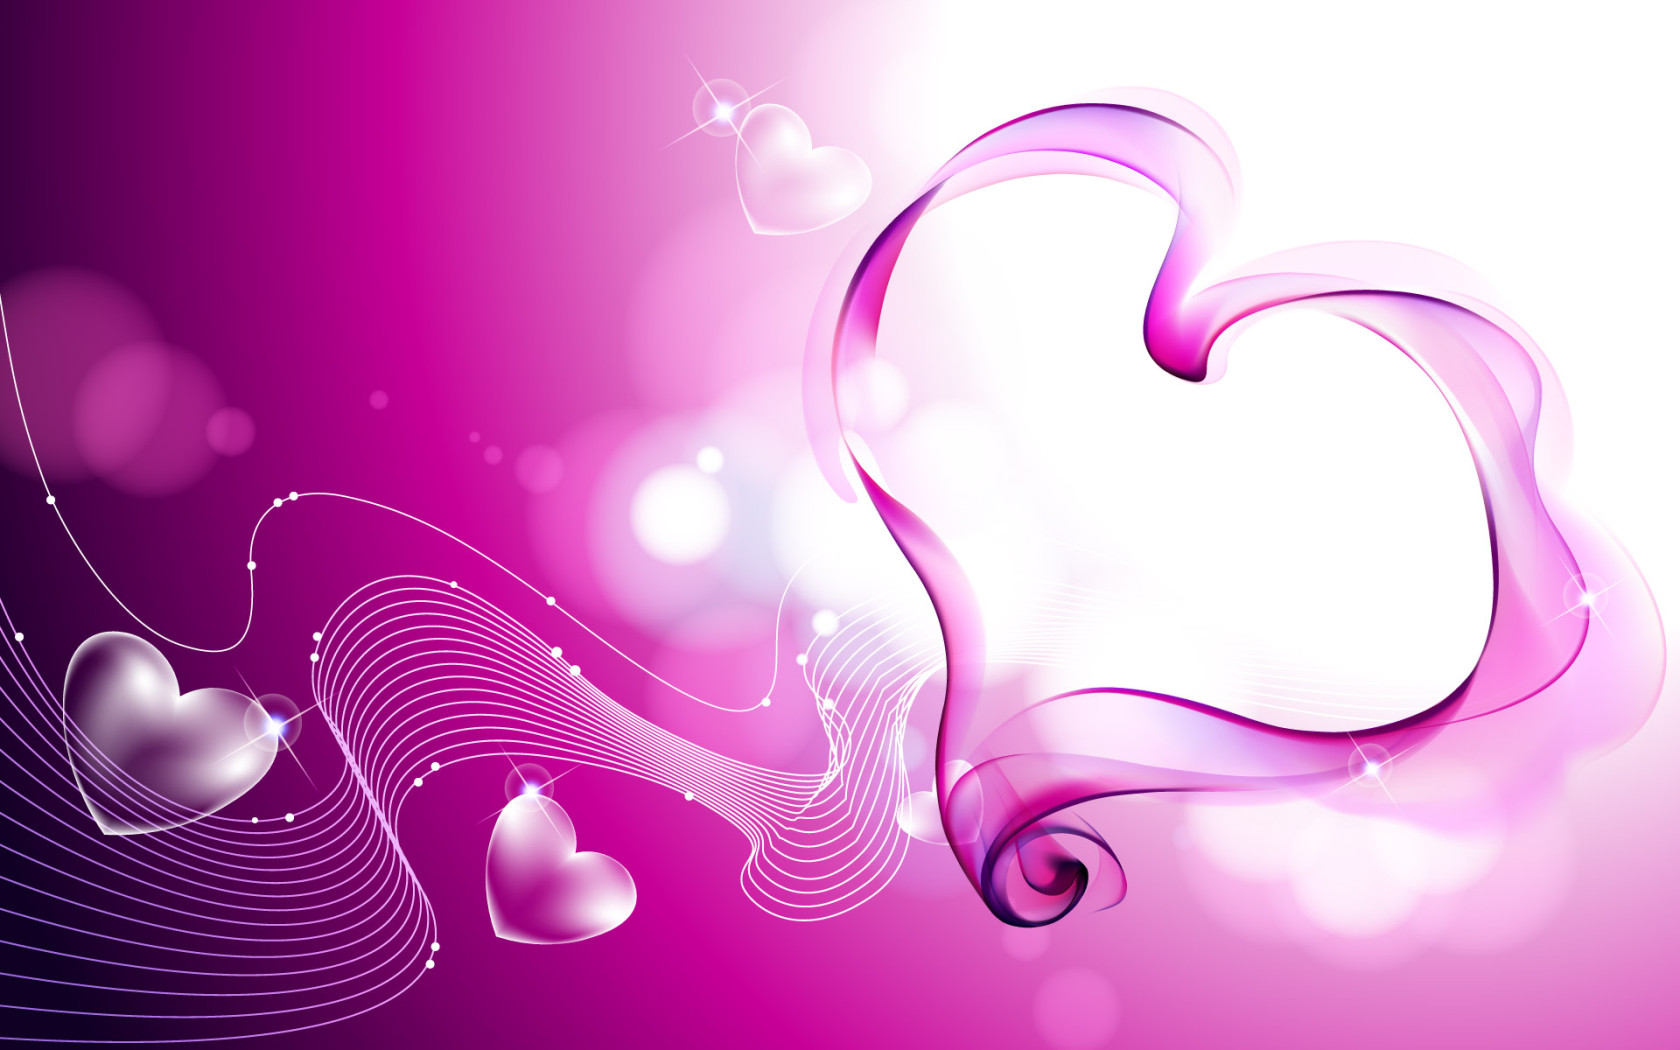 More Pink 3D wallpapers Pink 3D wallpapers 1680x1050